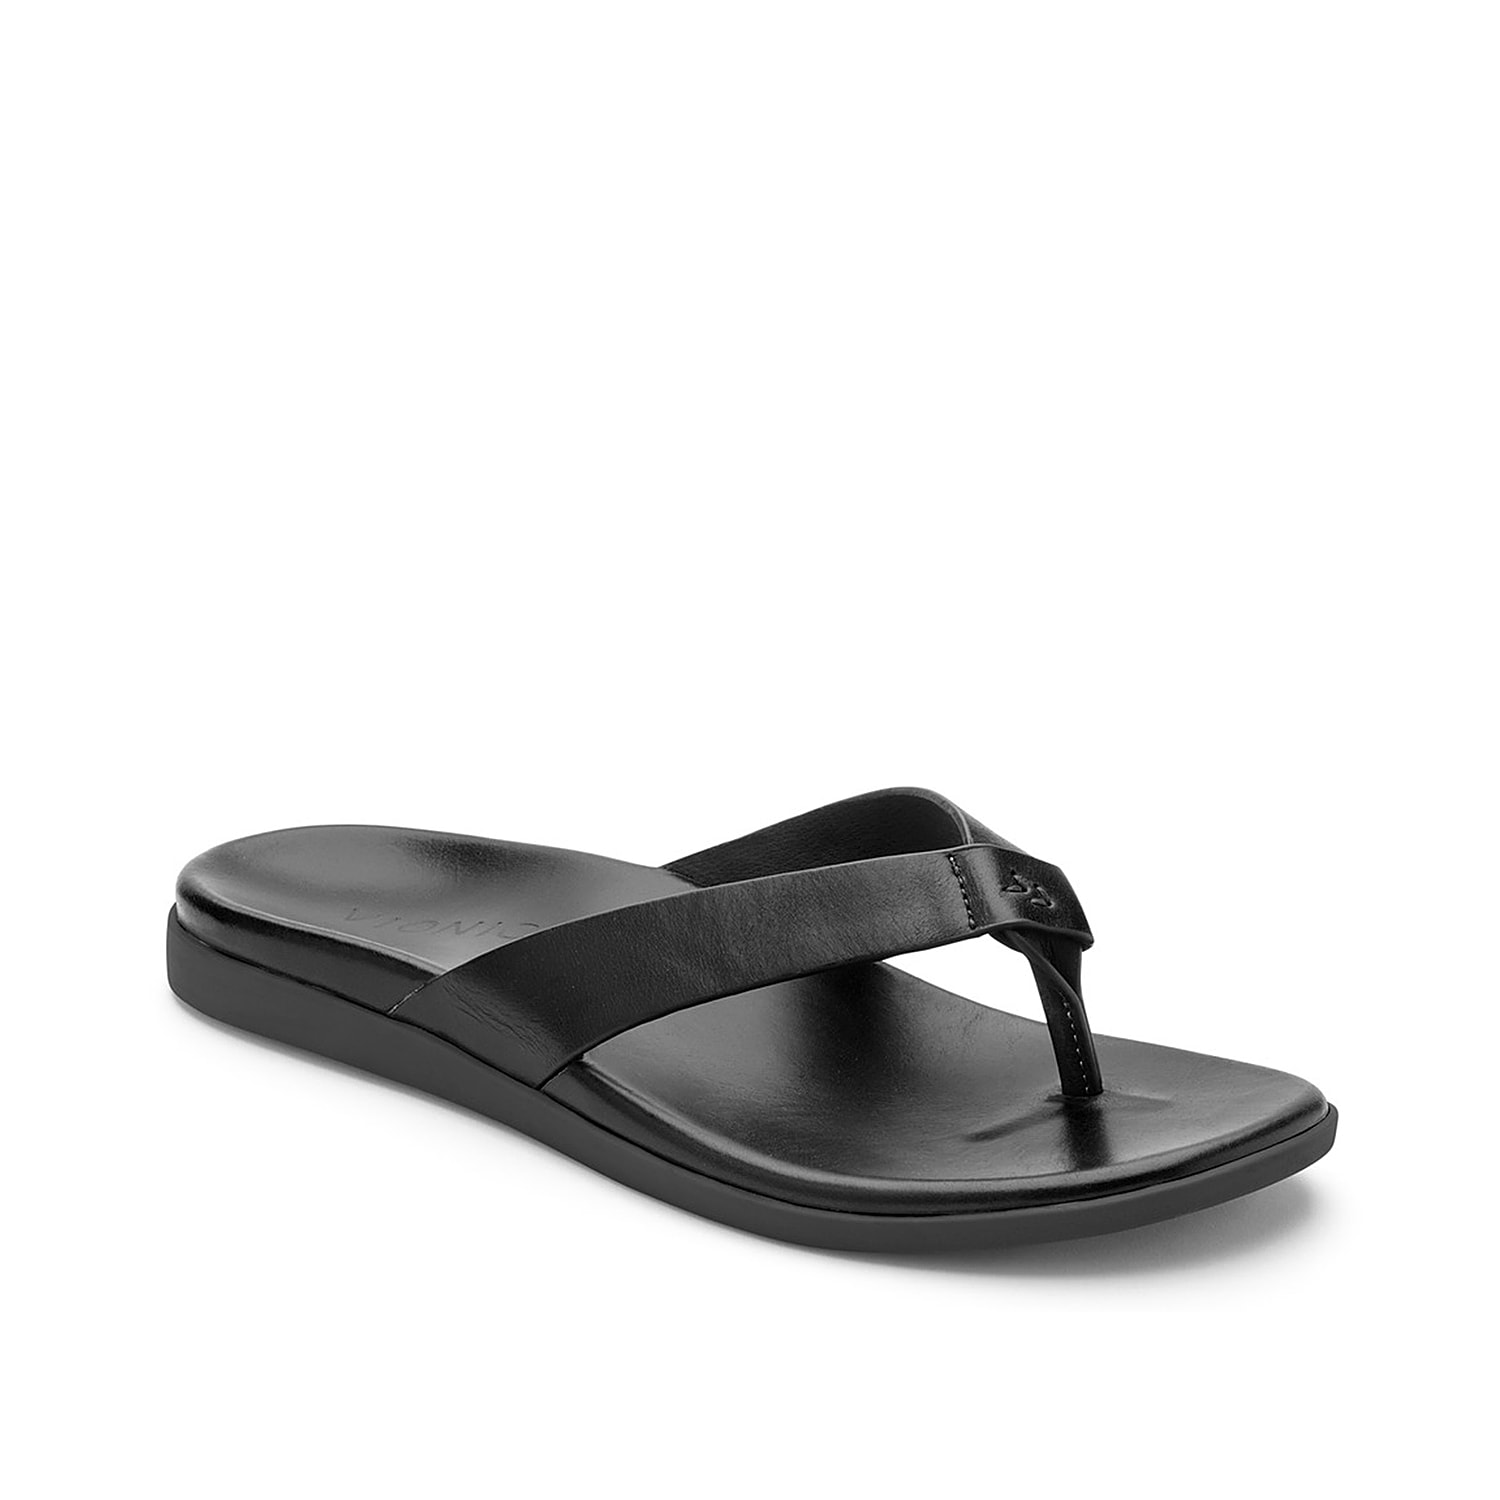 The Elijah thong sandal by Vionic gives your weekend outfit a luxurious edge. It showcases leather thong straps, leather footbed and rubber outsole.